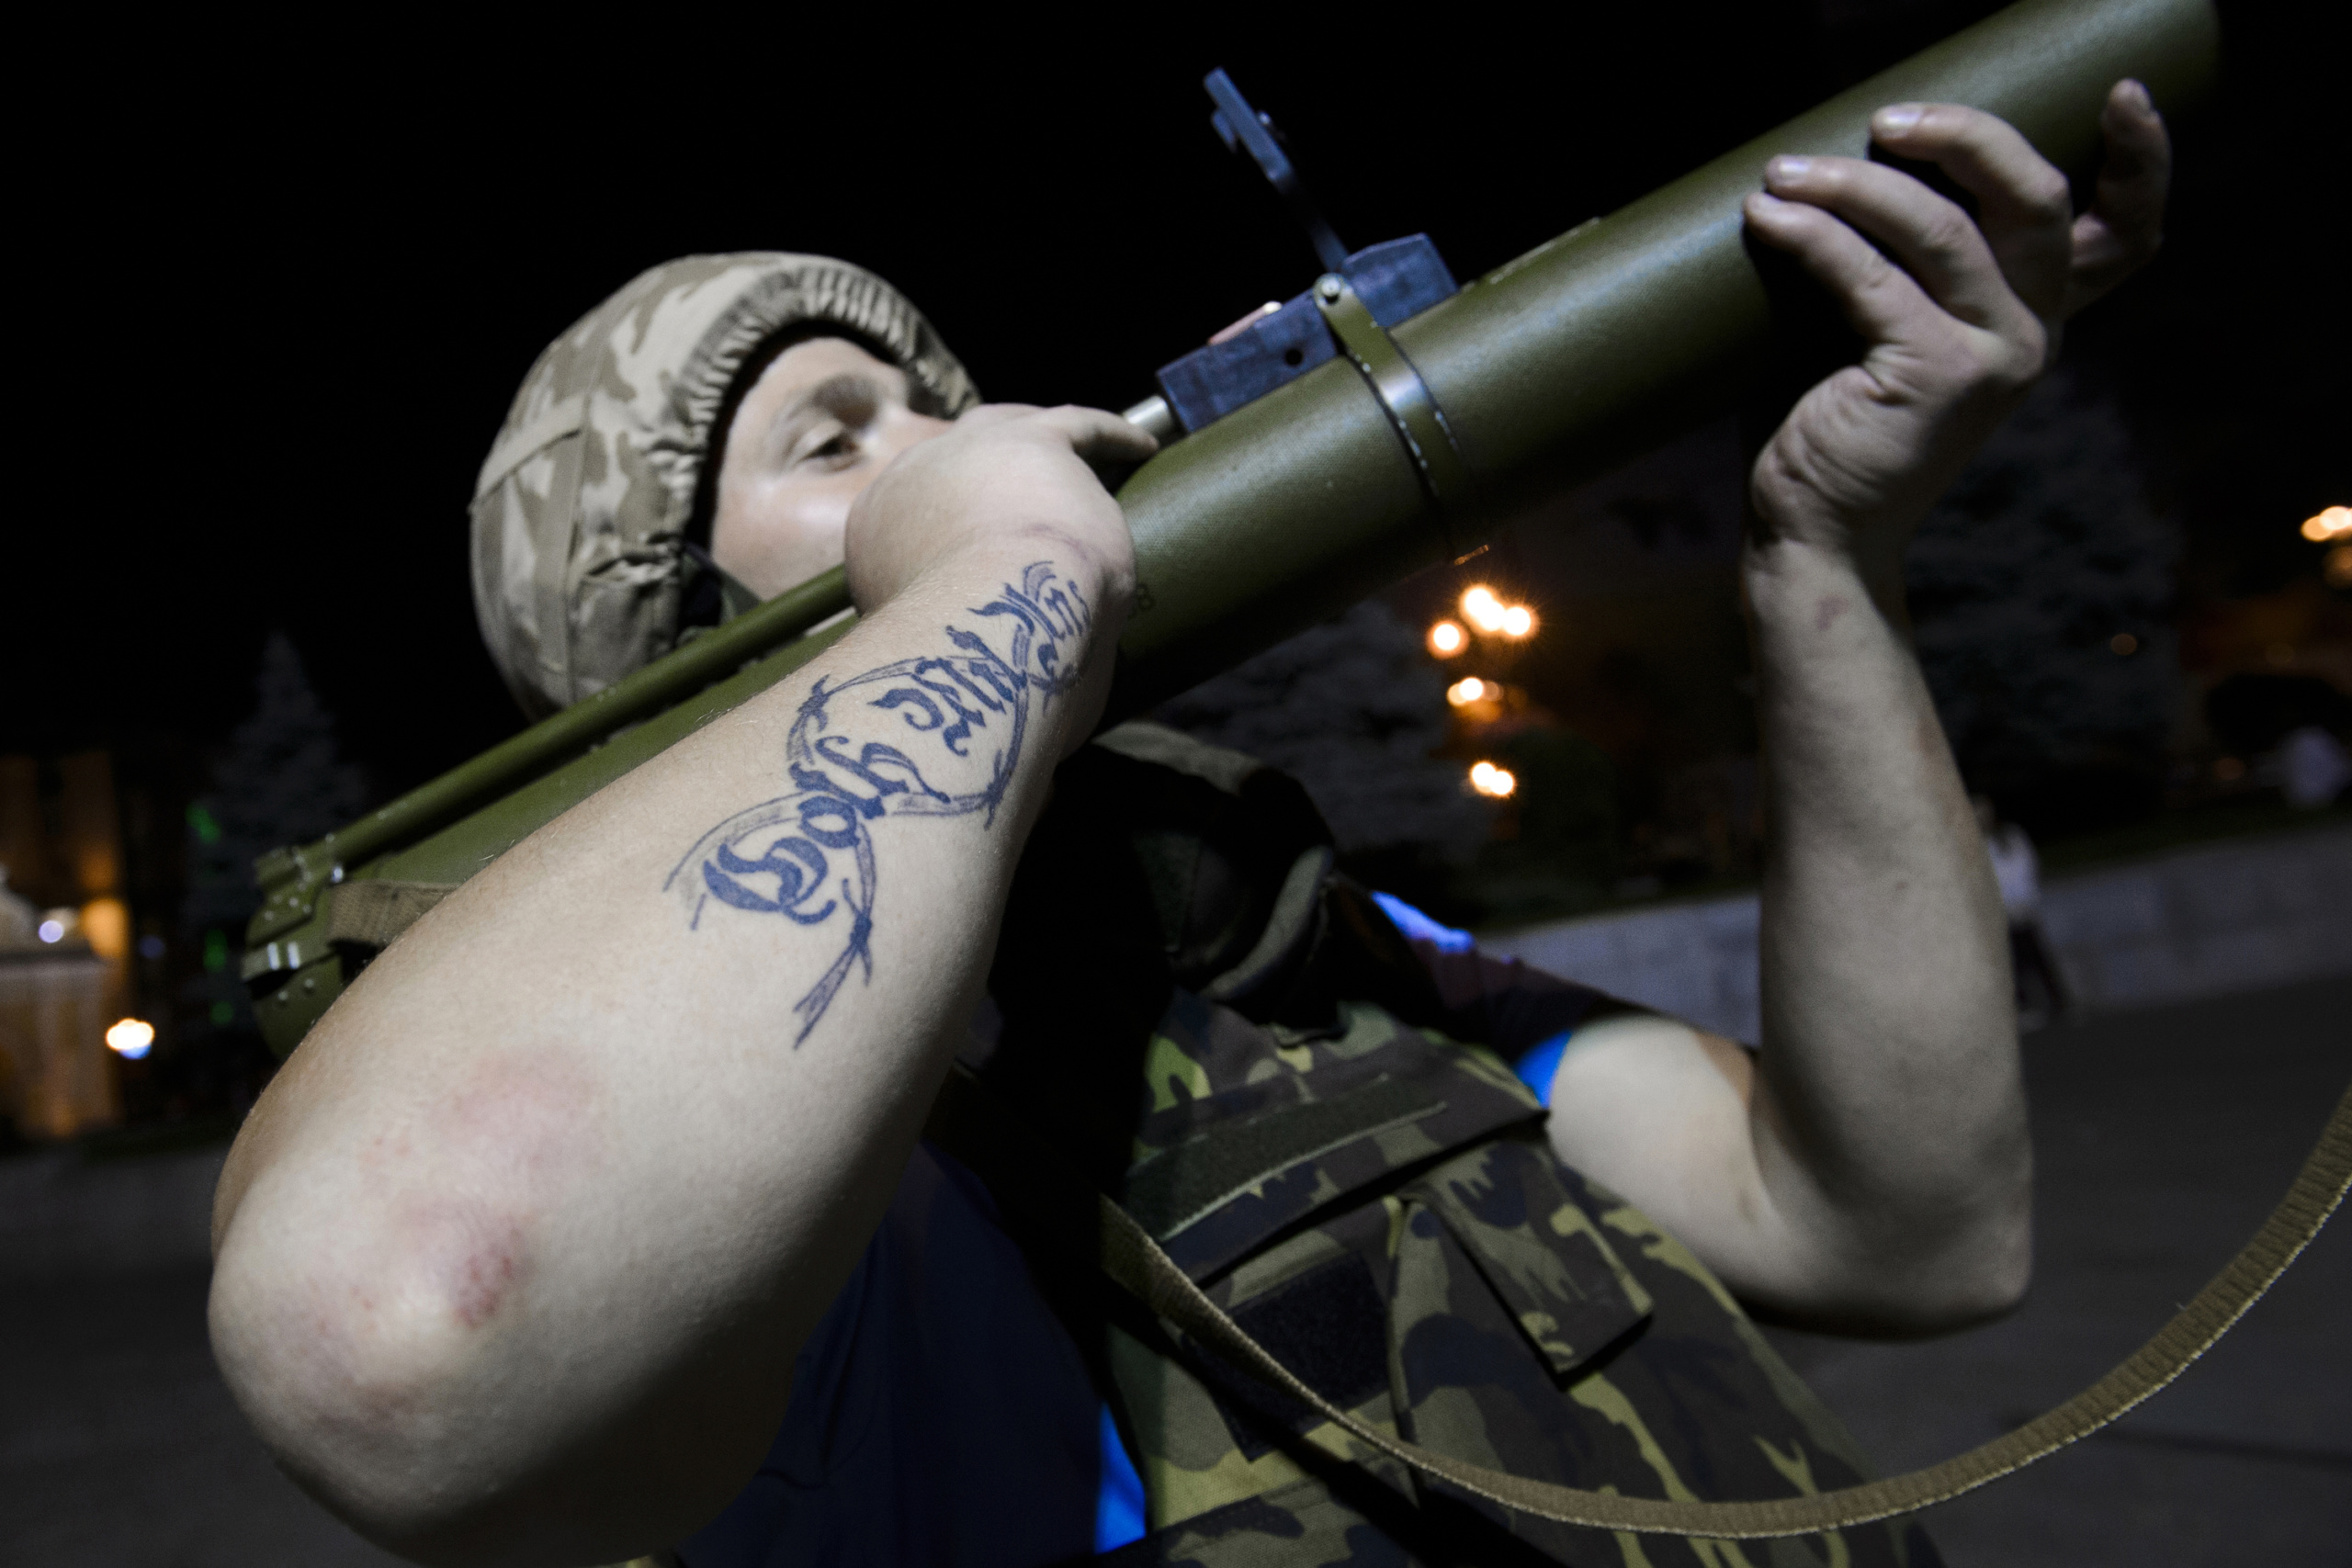 Kiev-Ukraine. A nationalist militant explains handling a rocket launcher. The fight between pro-Ukrainian troops and pro-Russian separatists is continuing in the Donbas region of eastern Ukraine despite the recent Minsk ceasefire agreements.